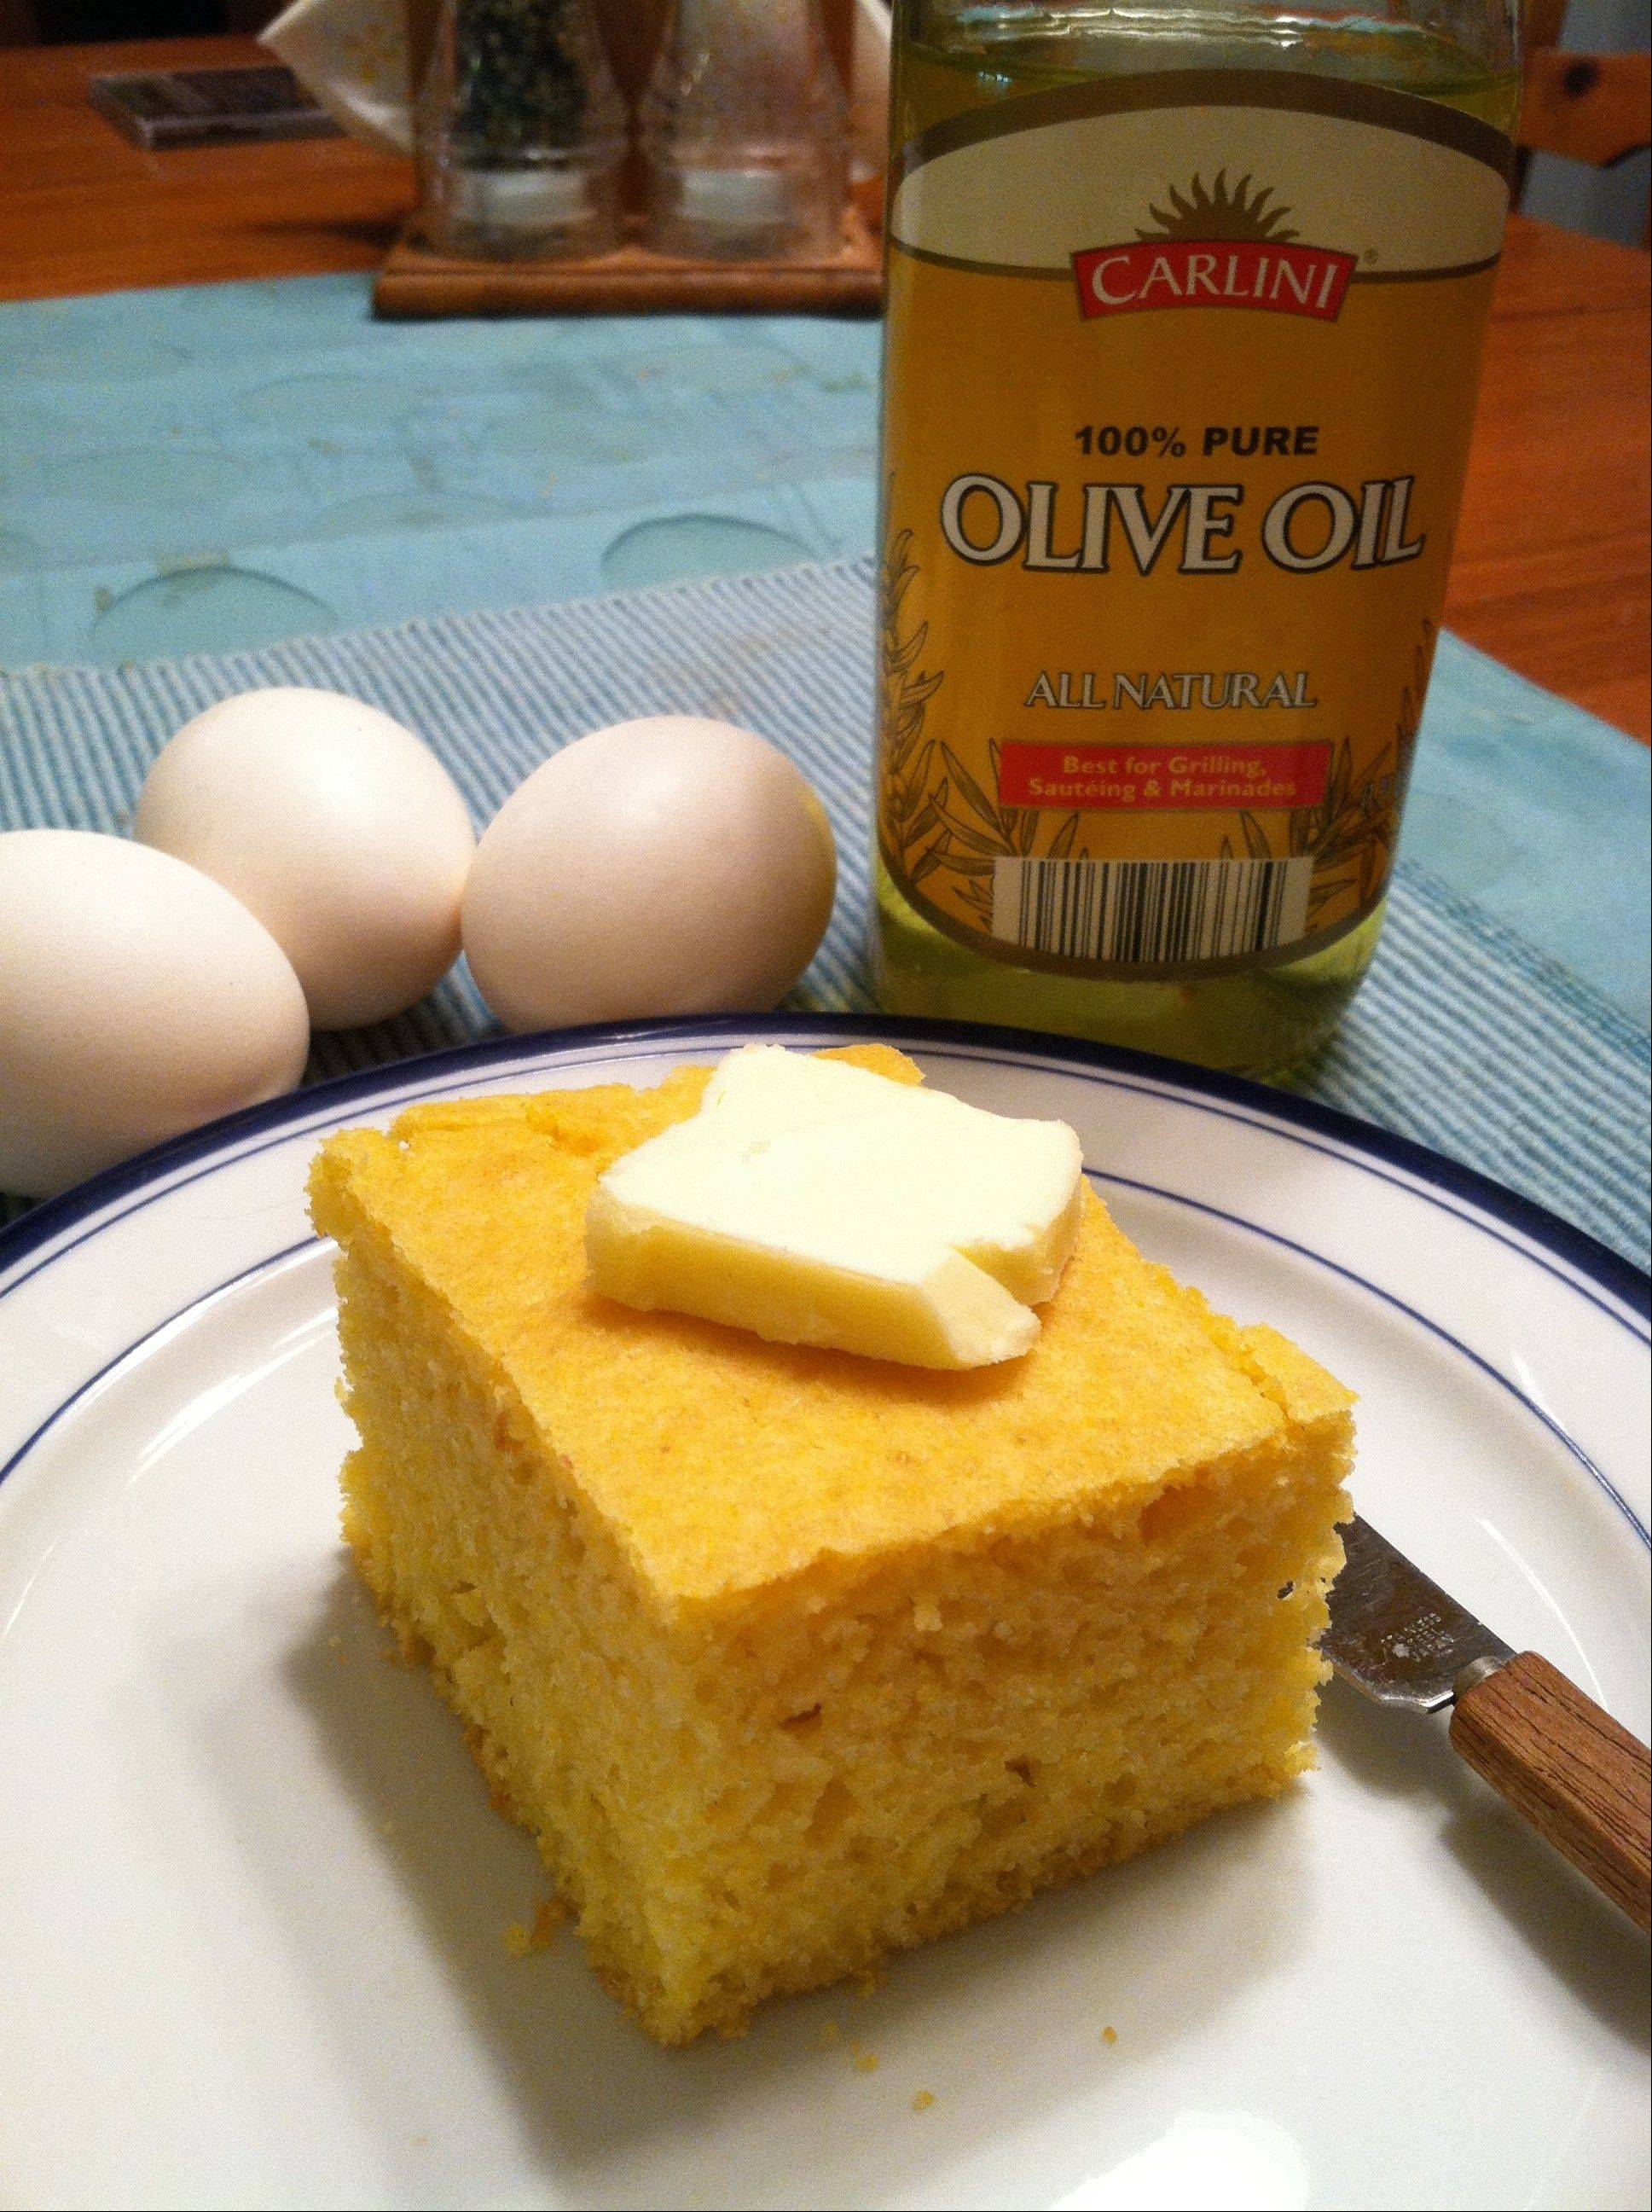 Olive oil keeps corn bread moist without adding saturated fat.